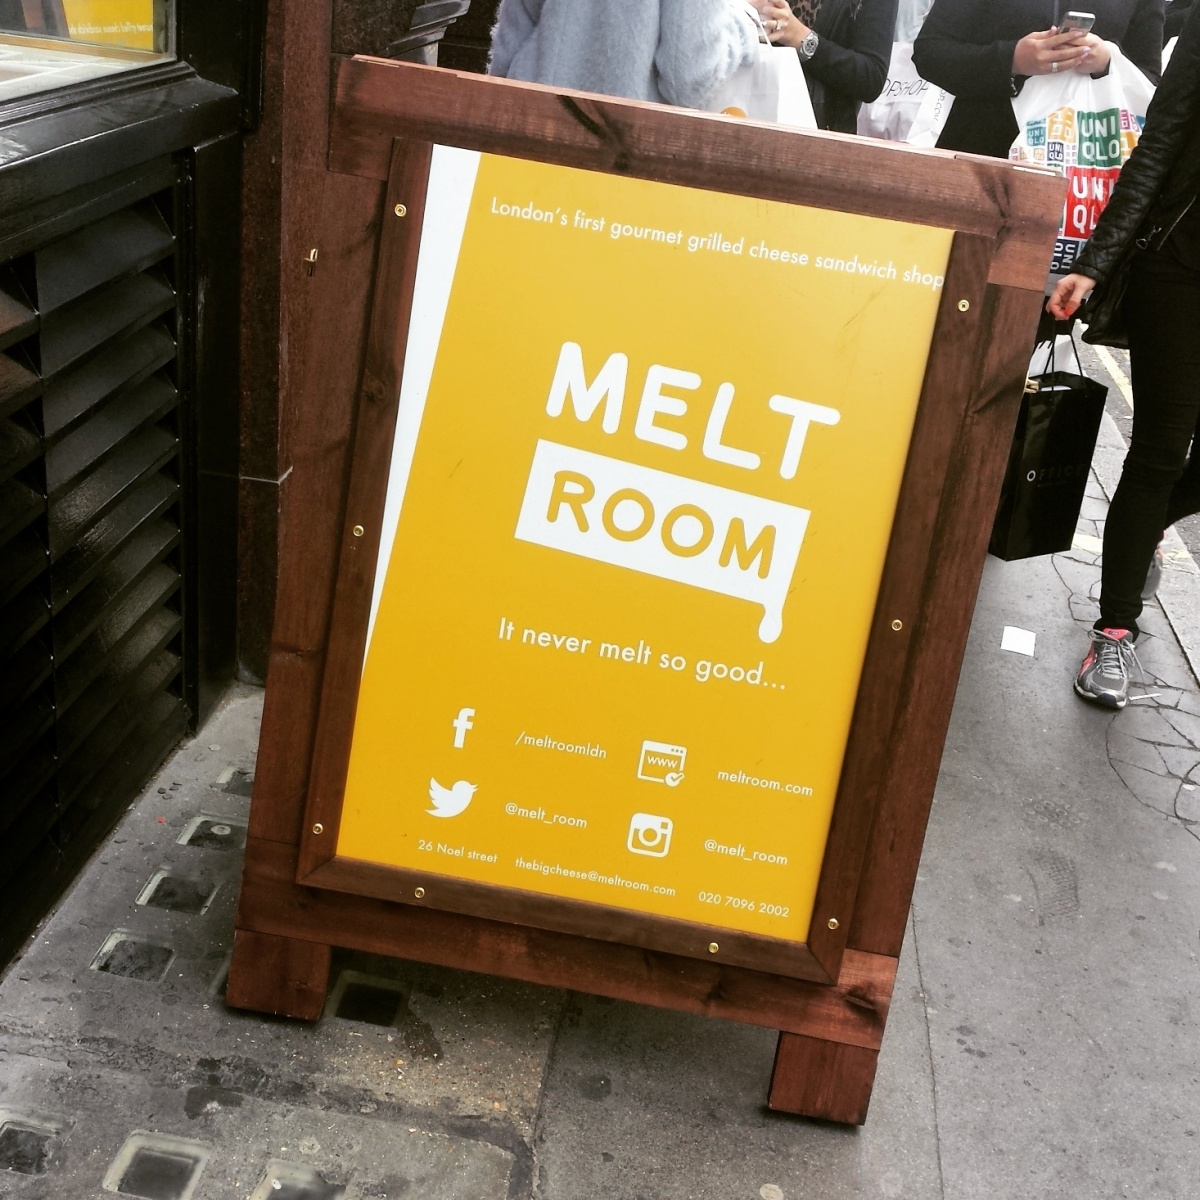 The Melt Room - Soho